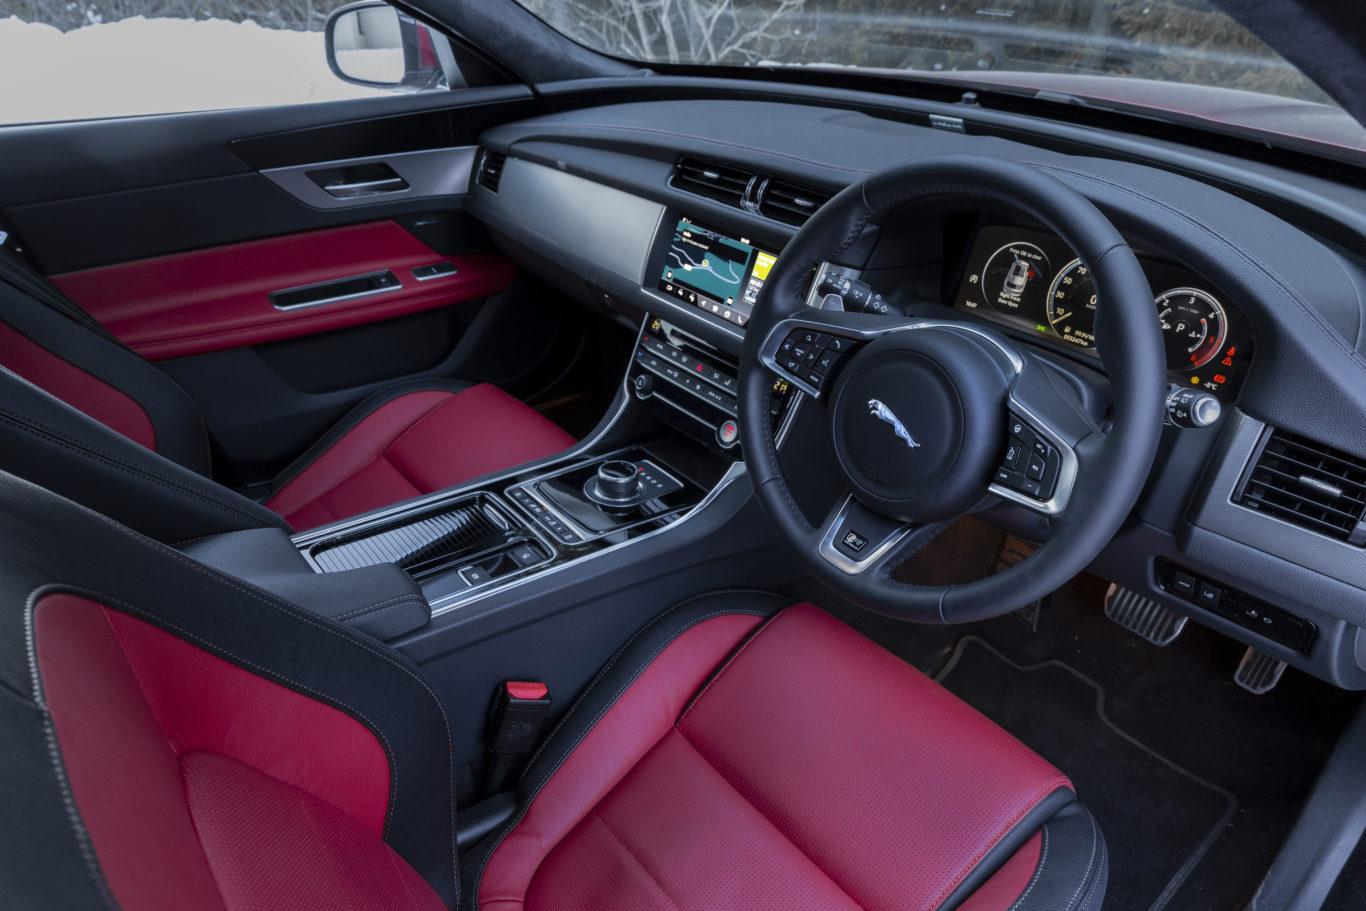 The Jaguar's interior looks and feels premium